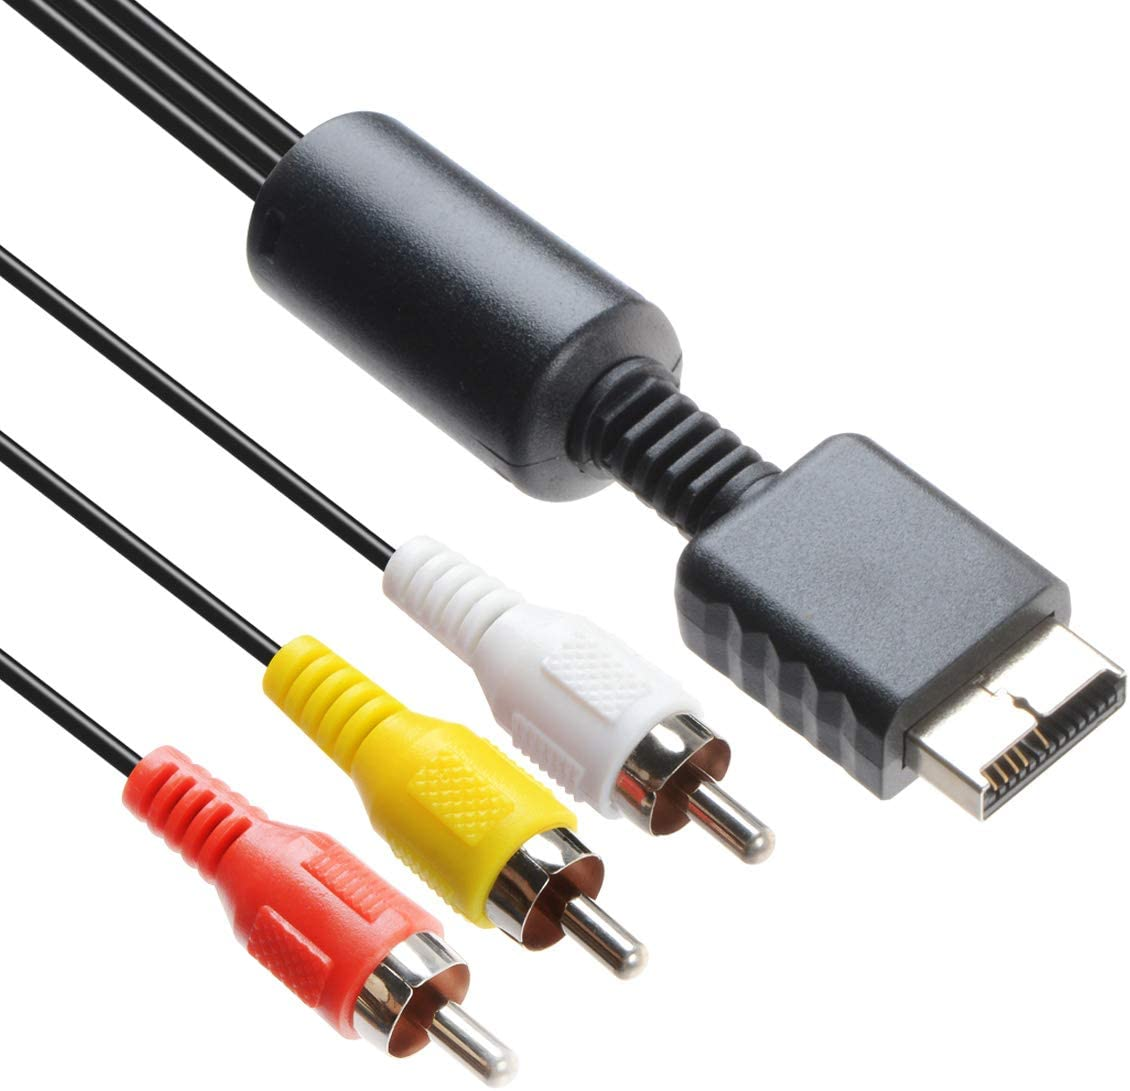 Audio Video RCA Cable - Game Console Component Accessories Connection AV Cable for PS1 PS2 PS3 Playstation